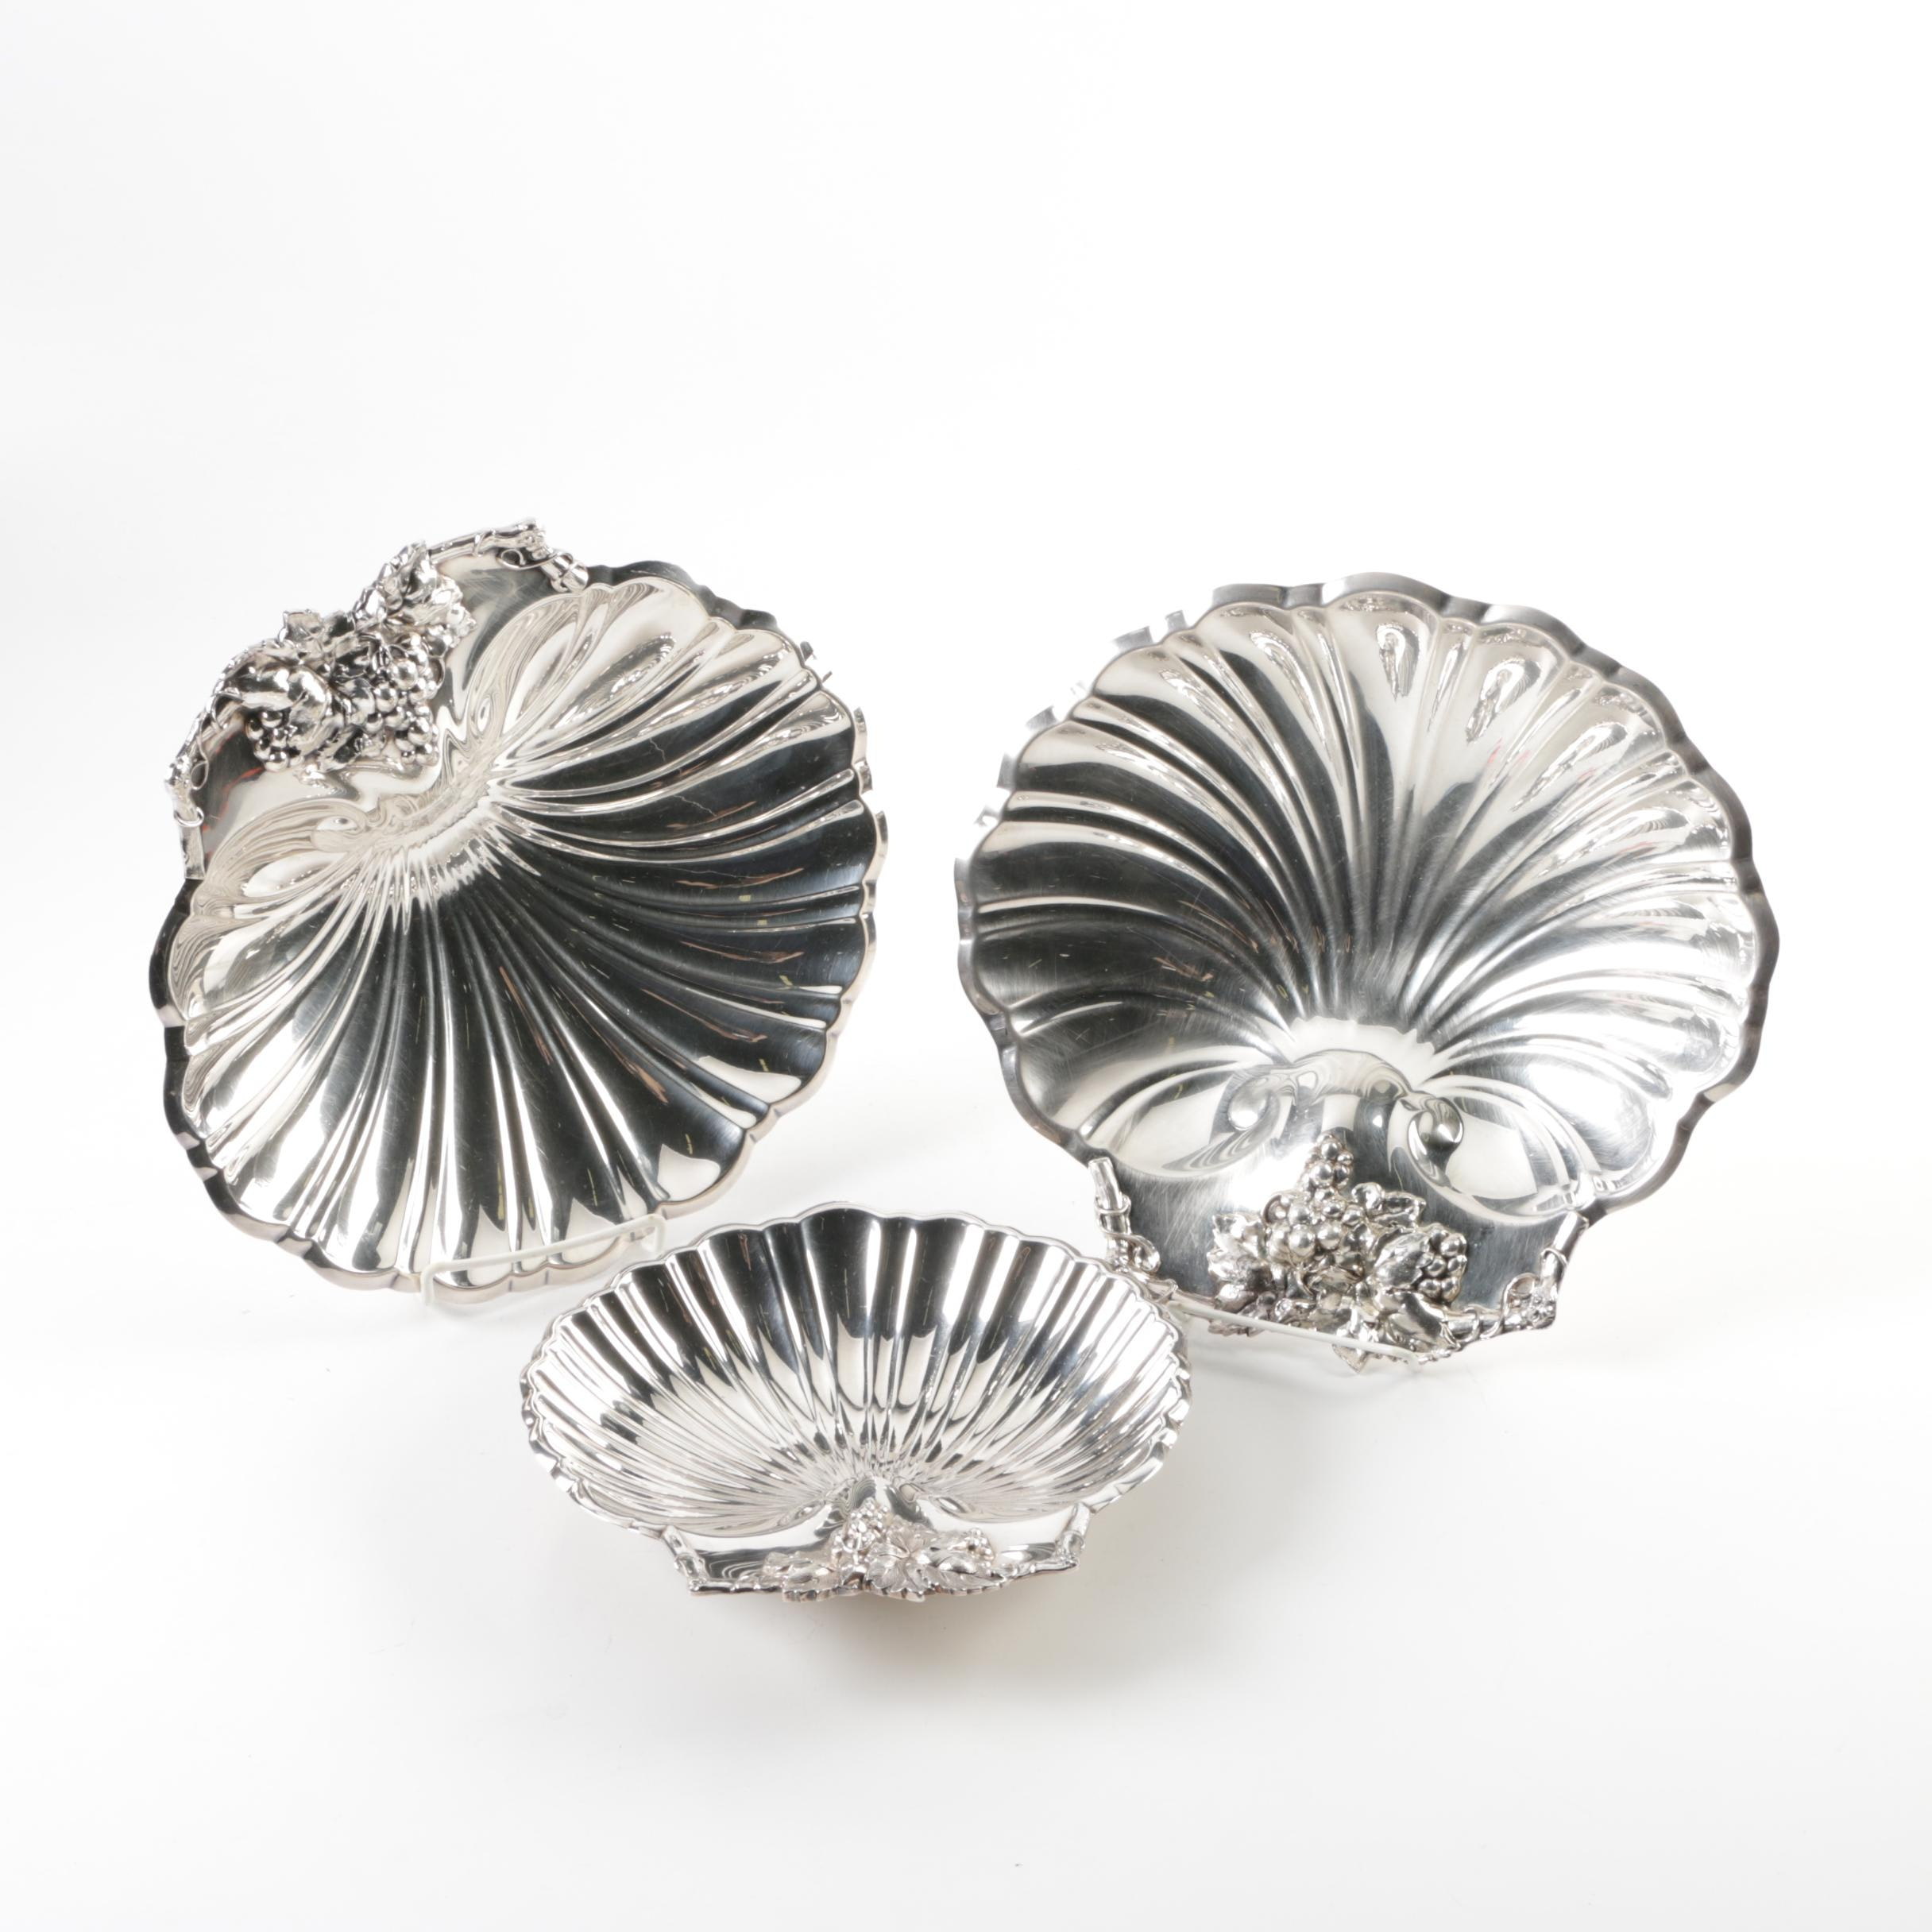 Reed & Barton Silver Plated Shell Dishes